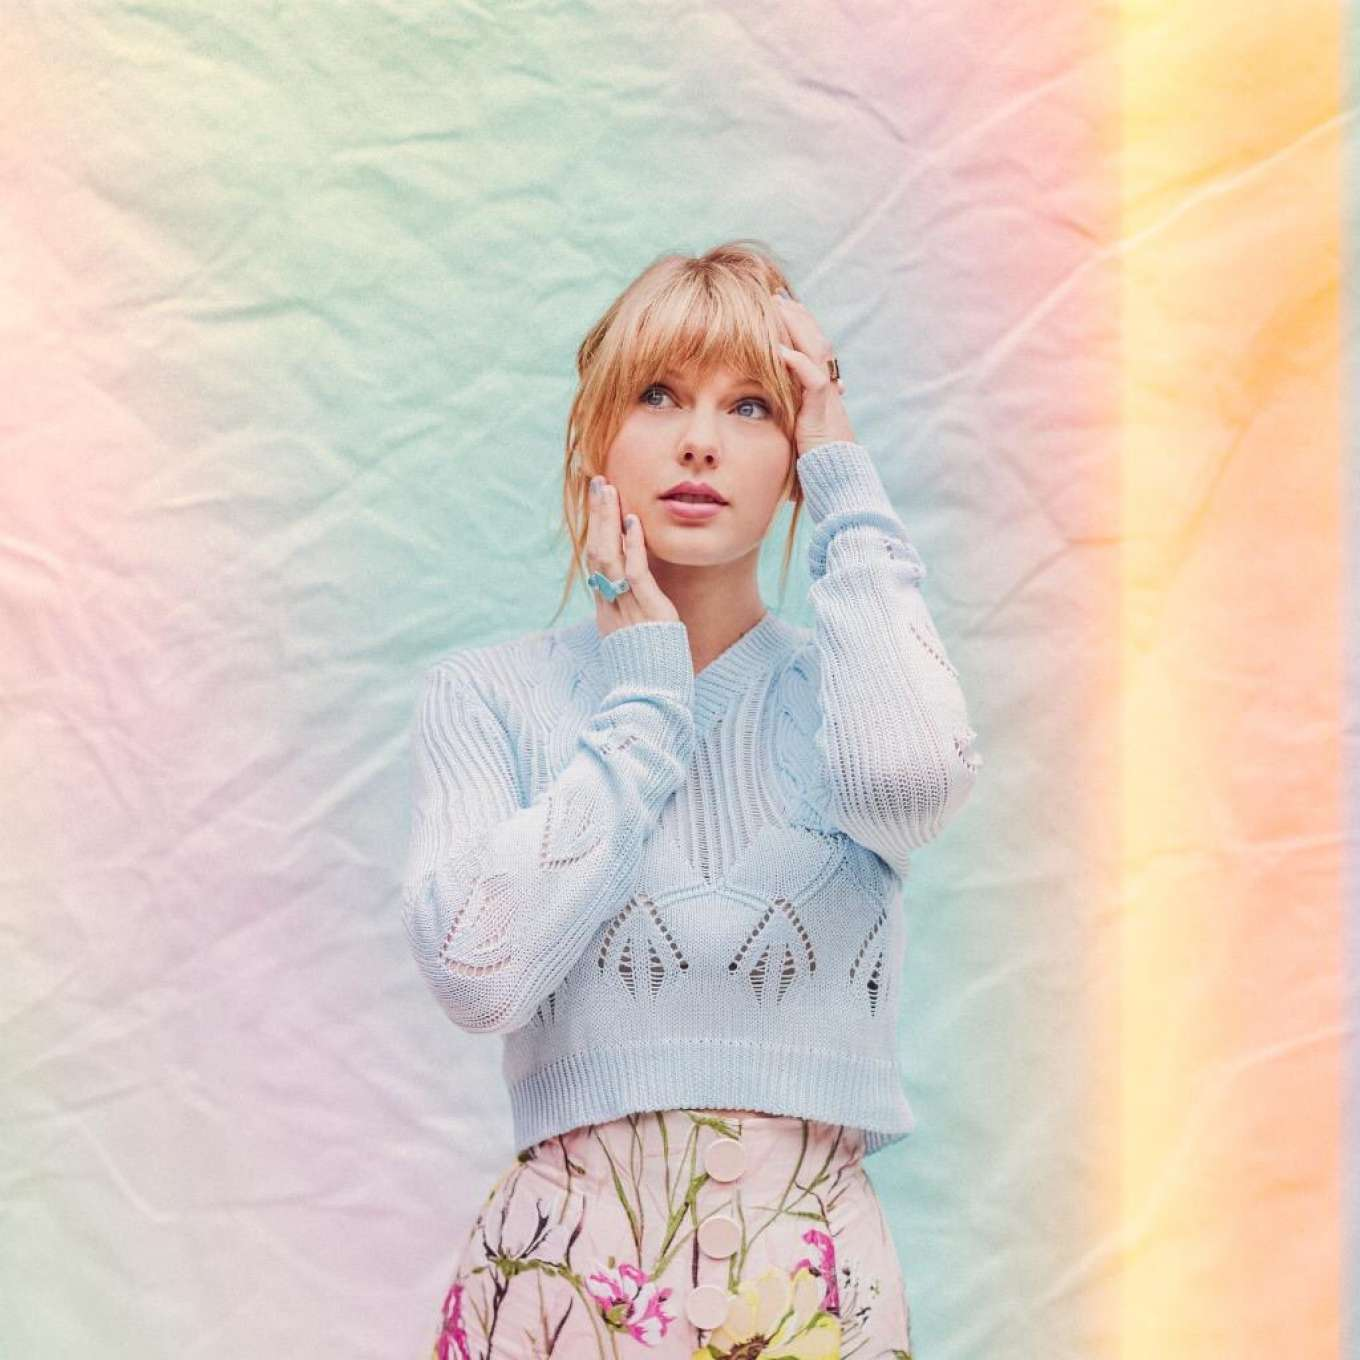 Taylor Swift 2019 : Taylor Swift for Me! Magazine 2019 -06